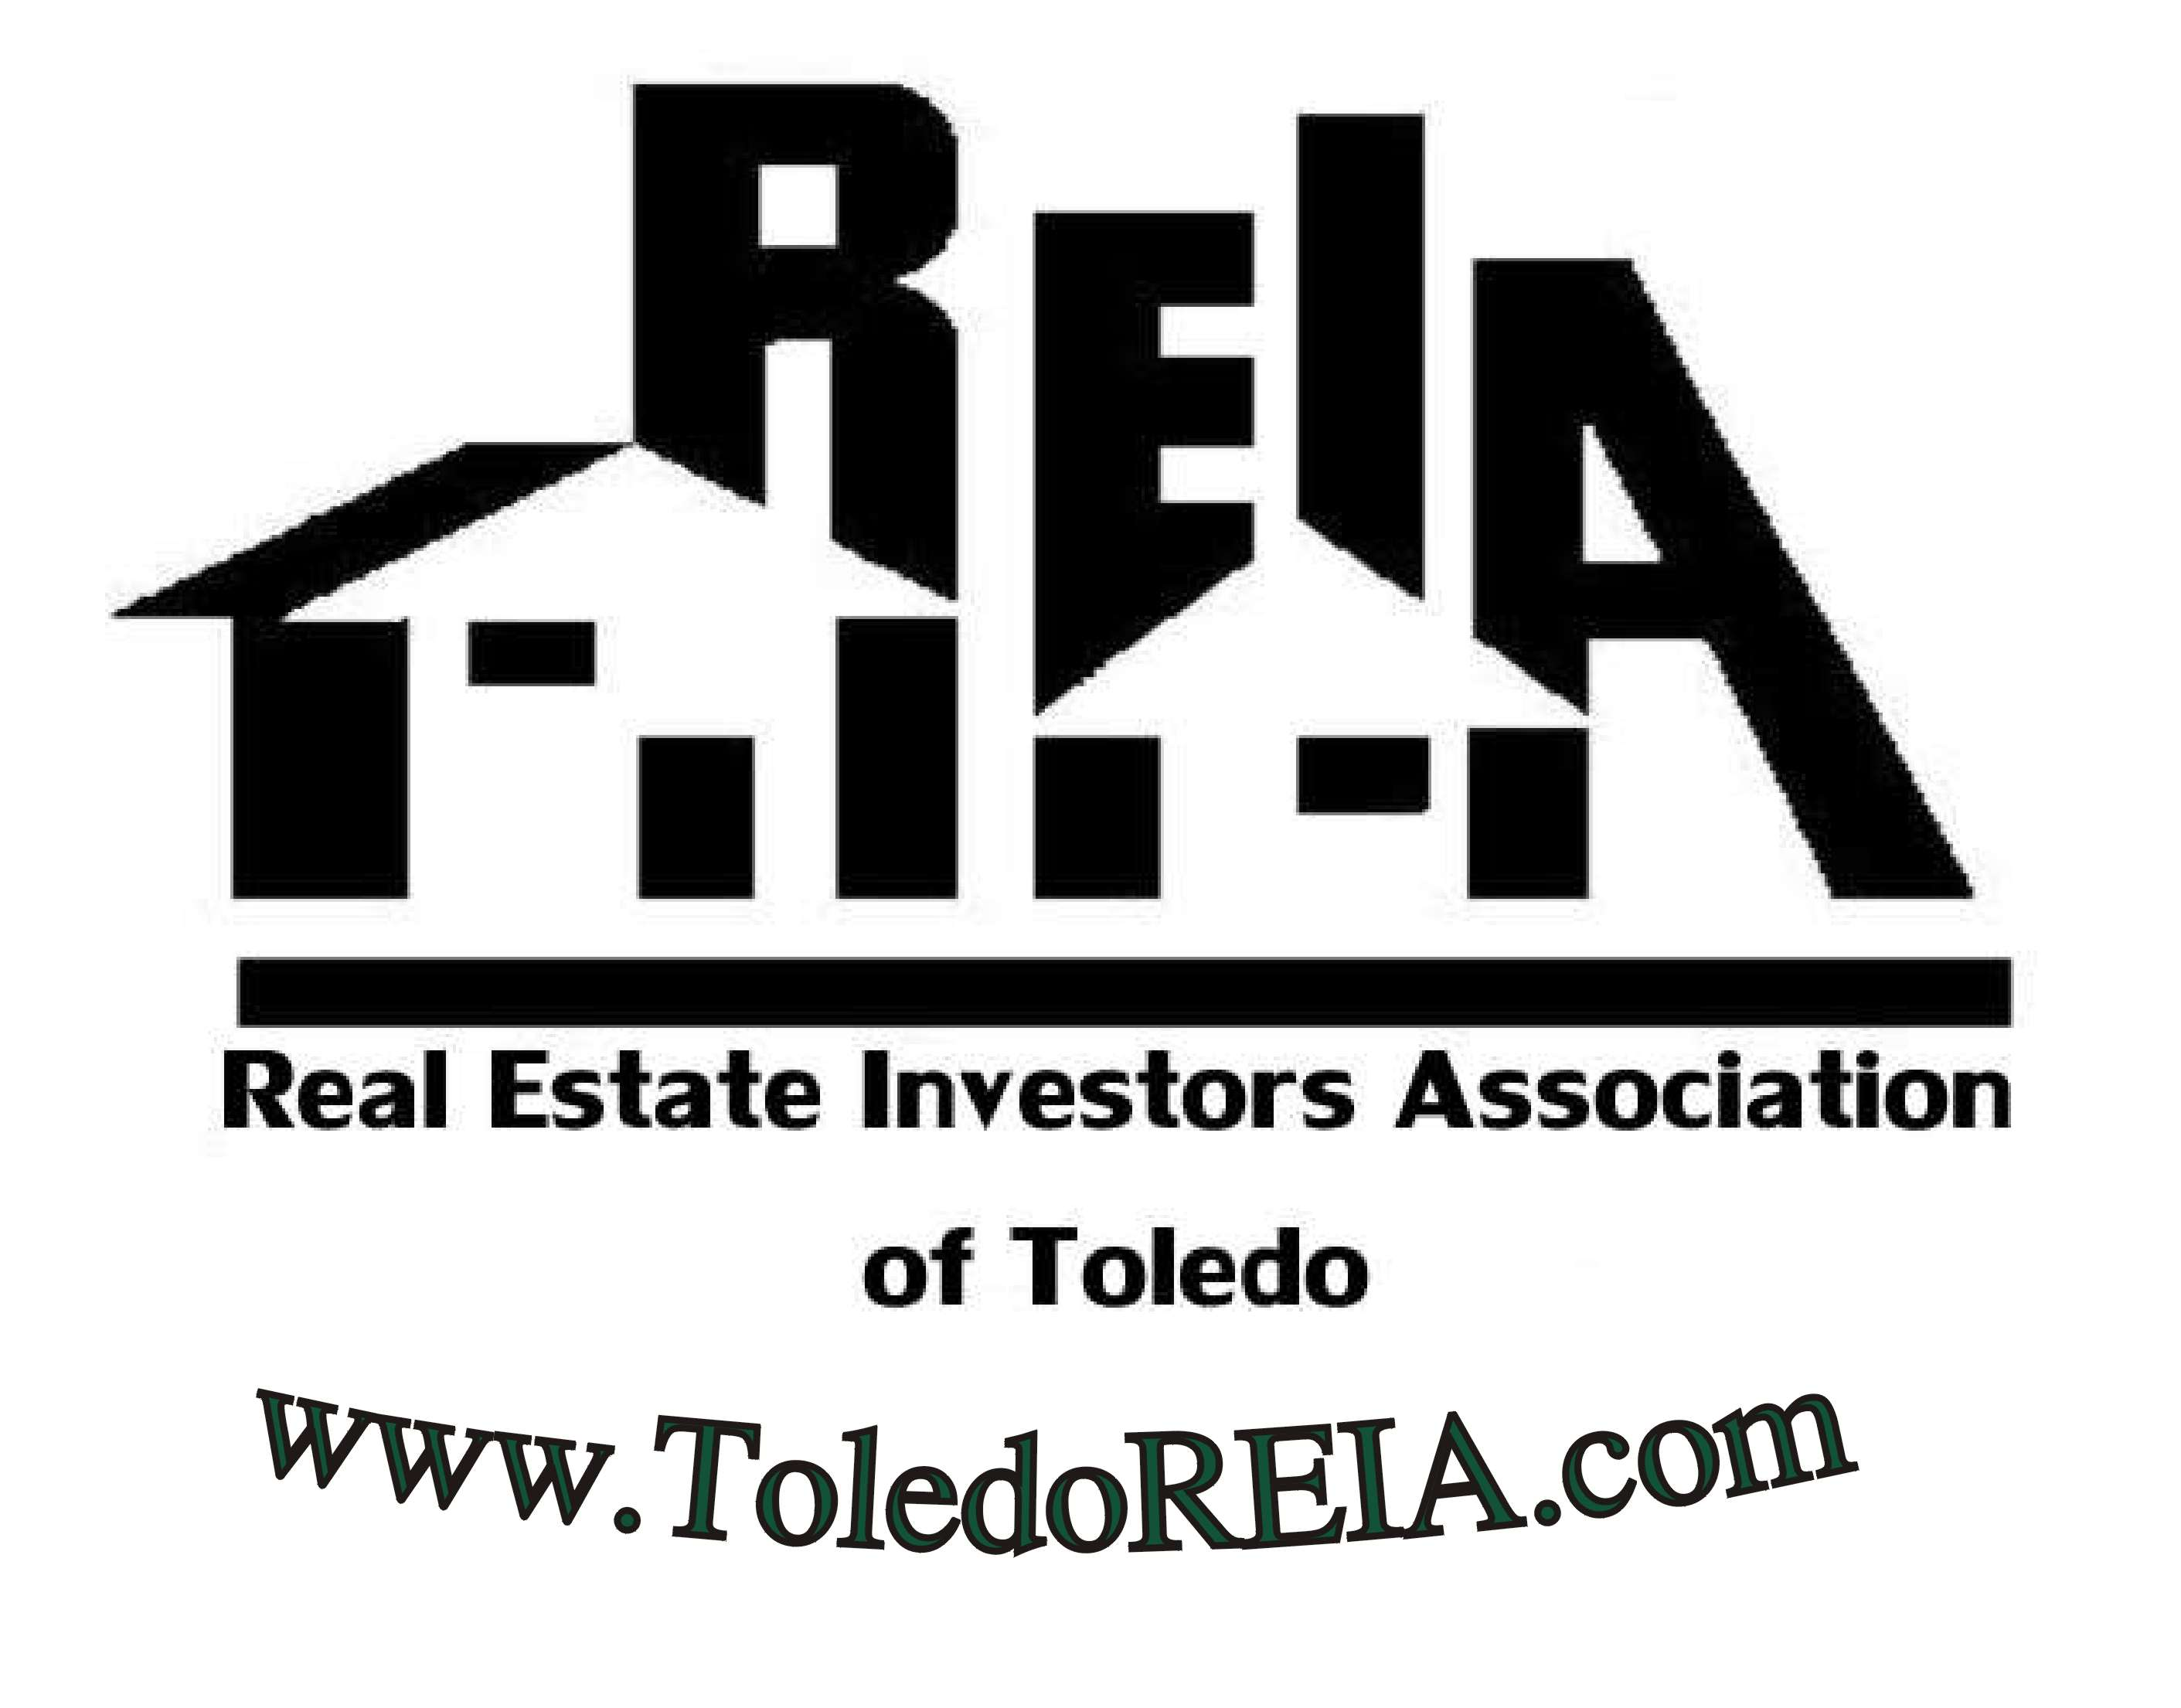 toledo real estate investors association